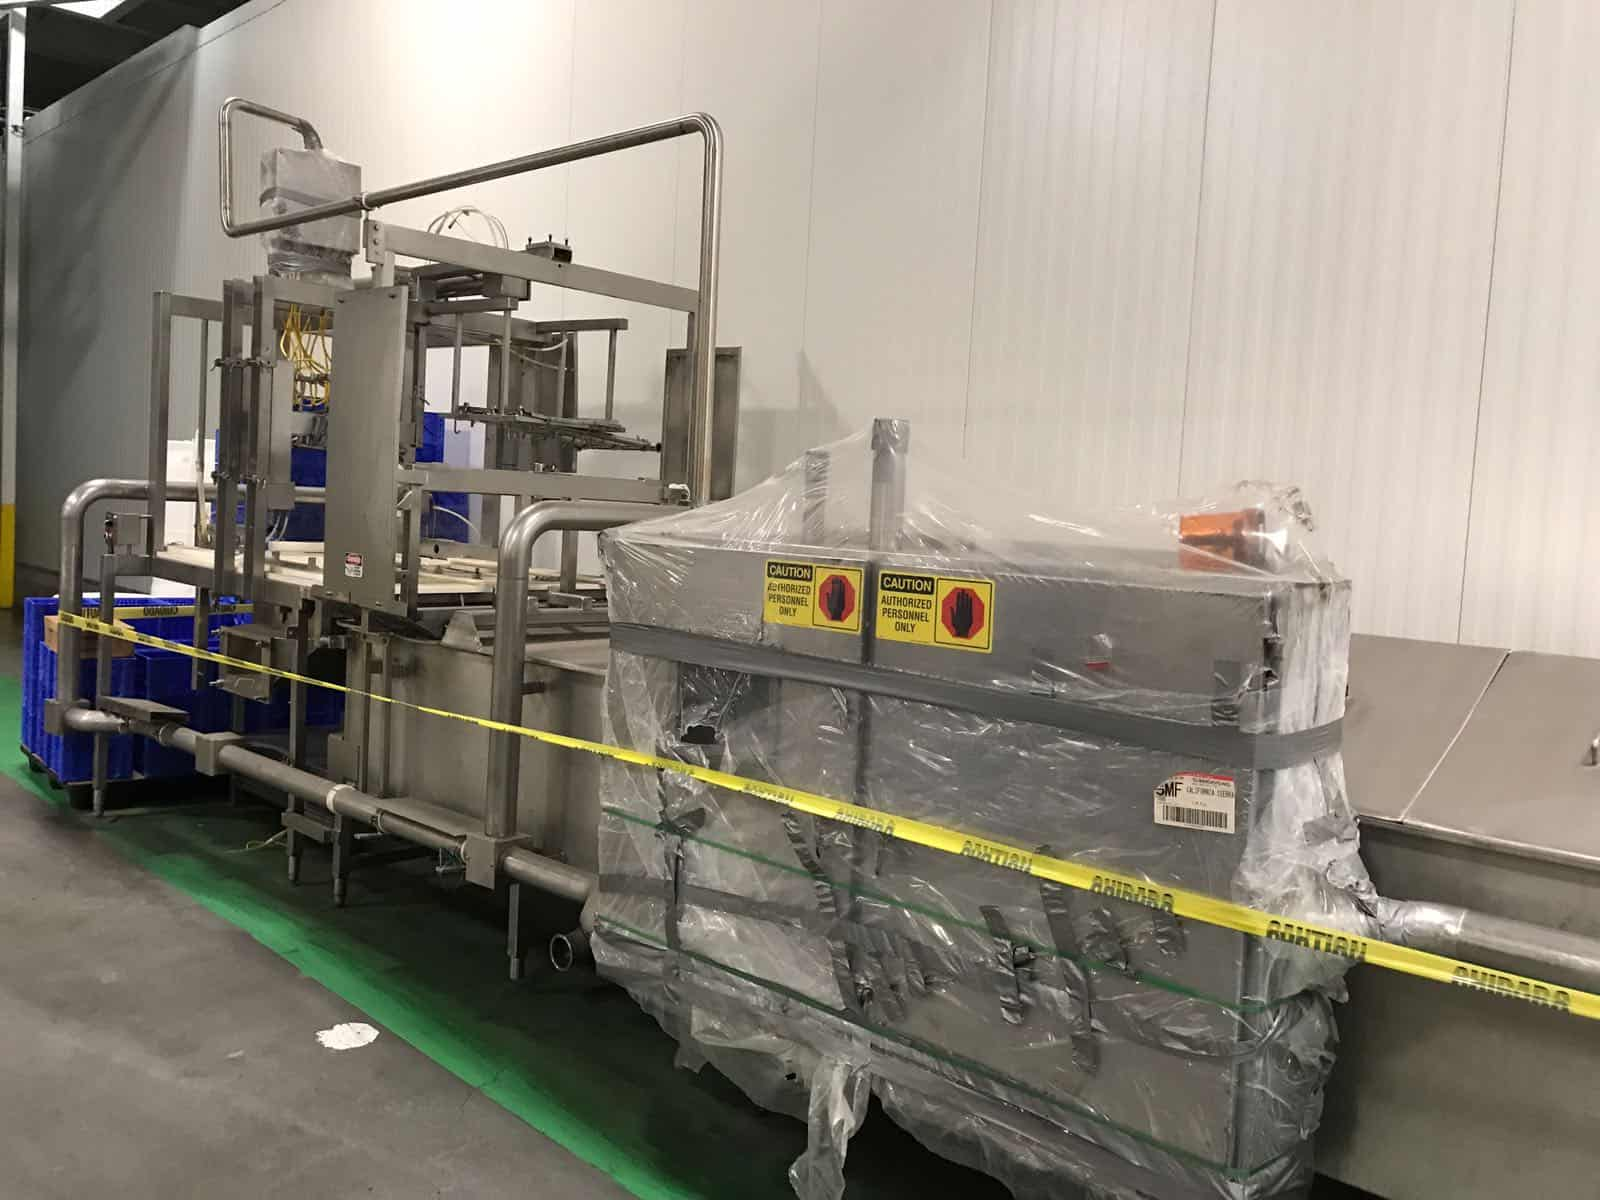 "Viking Hydra-Form Mozzarella Block Molder/Chiller System, S/N 97-036-RH, with Allen Bradley Panel View Plus 1000 Controls & 5/30 PLC. 54"" Wide Chill Tank, Tank Length for Chilling is 22' Lonf, Operational Width-Turning End with Cylinder 9' Long, Including Lift/Drop Area. Operational Width at Fill End 9'. Operational Length with Infeed & Discharge Shuttles is 35' Long, Molding Section is 80"" Long, Dual Auger All S/S. Molder Extruder Extends 48"" from Side at Filling End. (Located in California) ***RLF***"